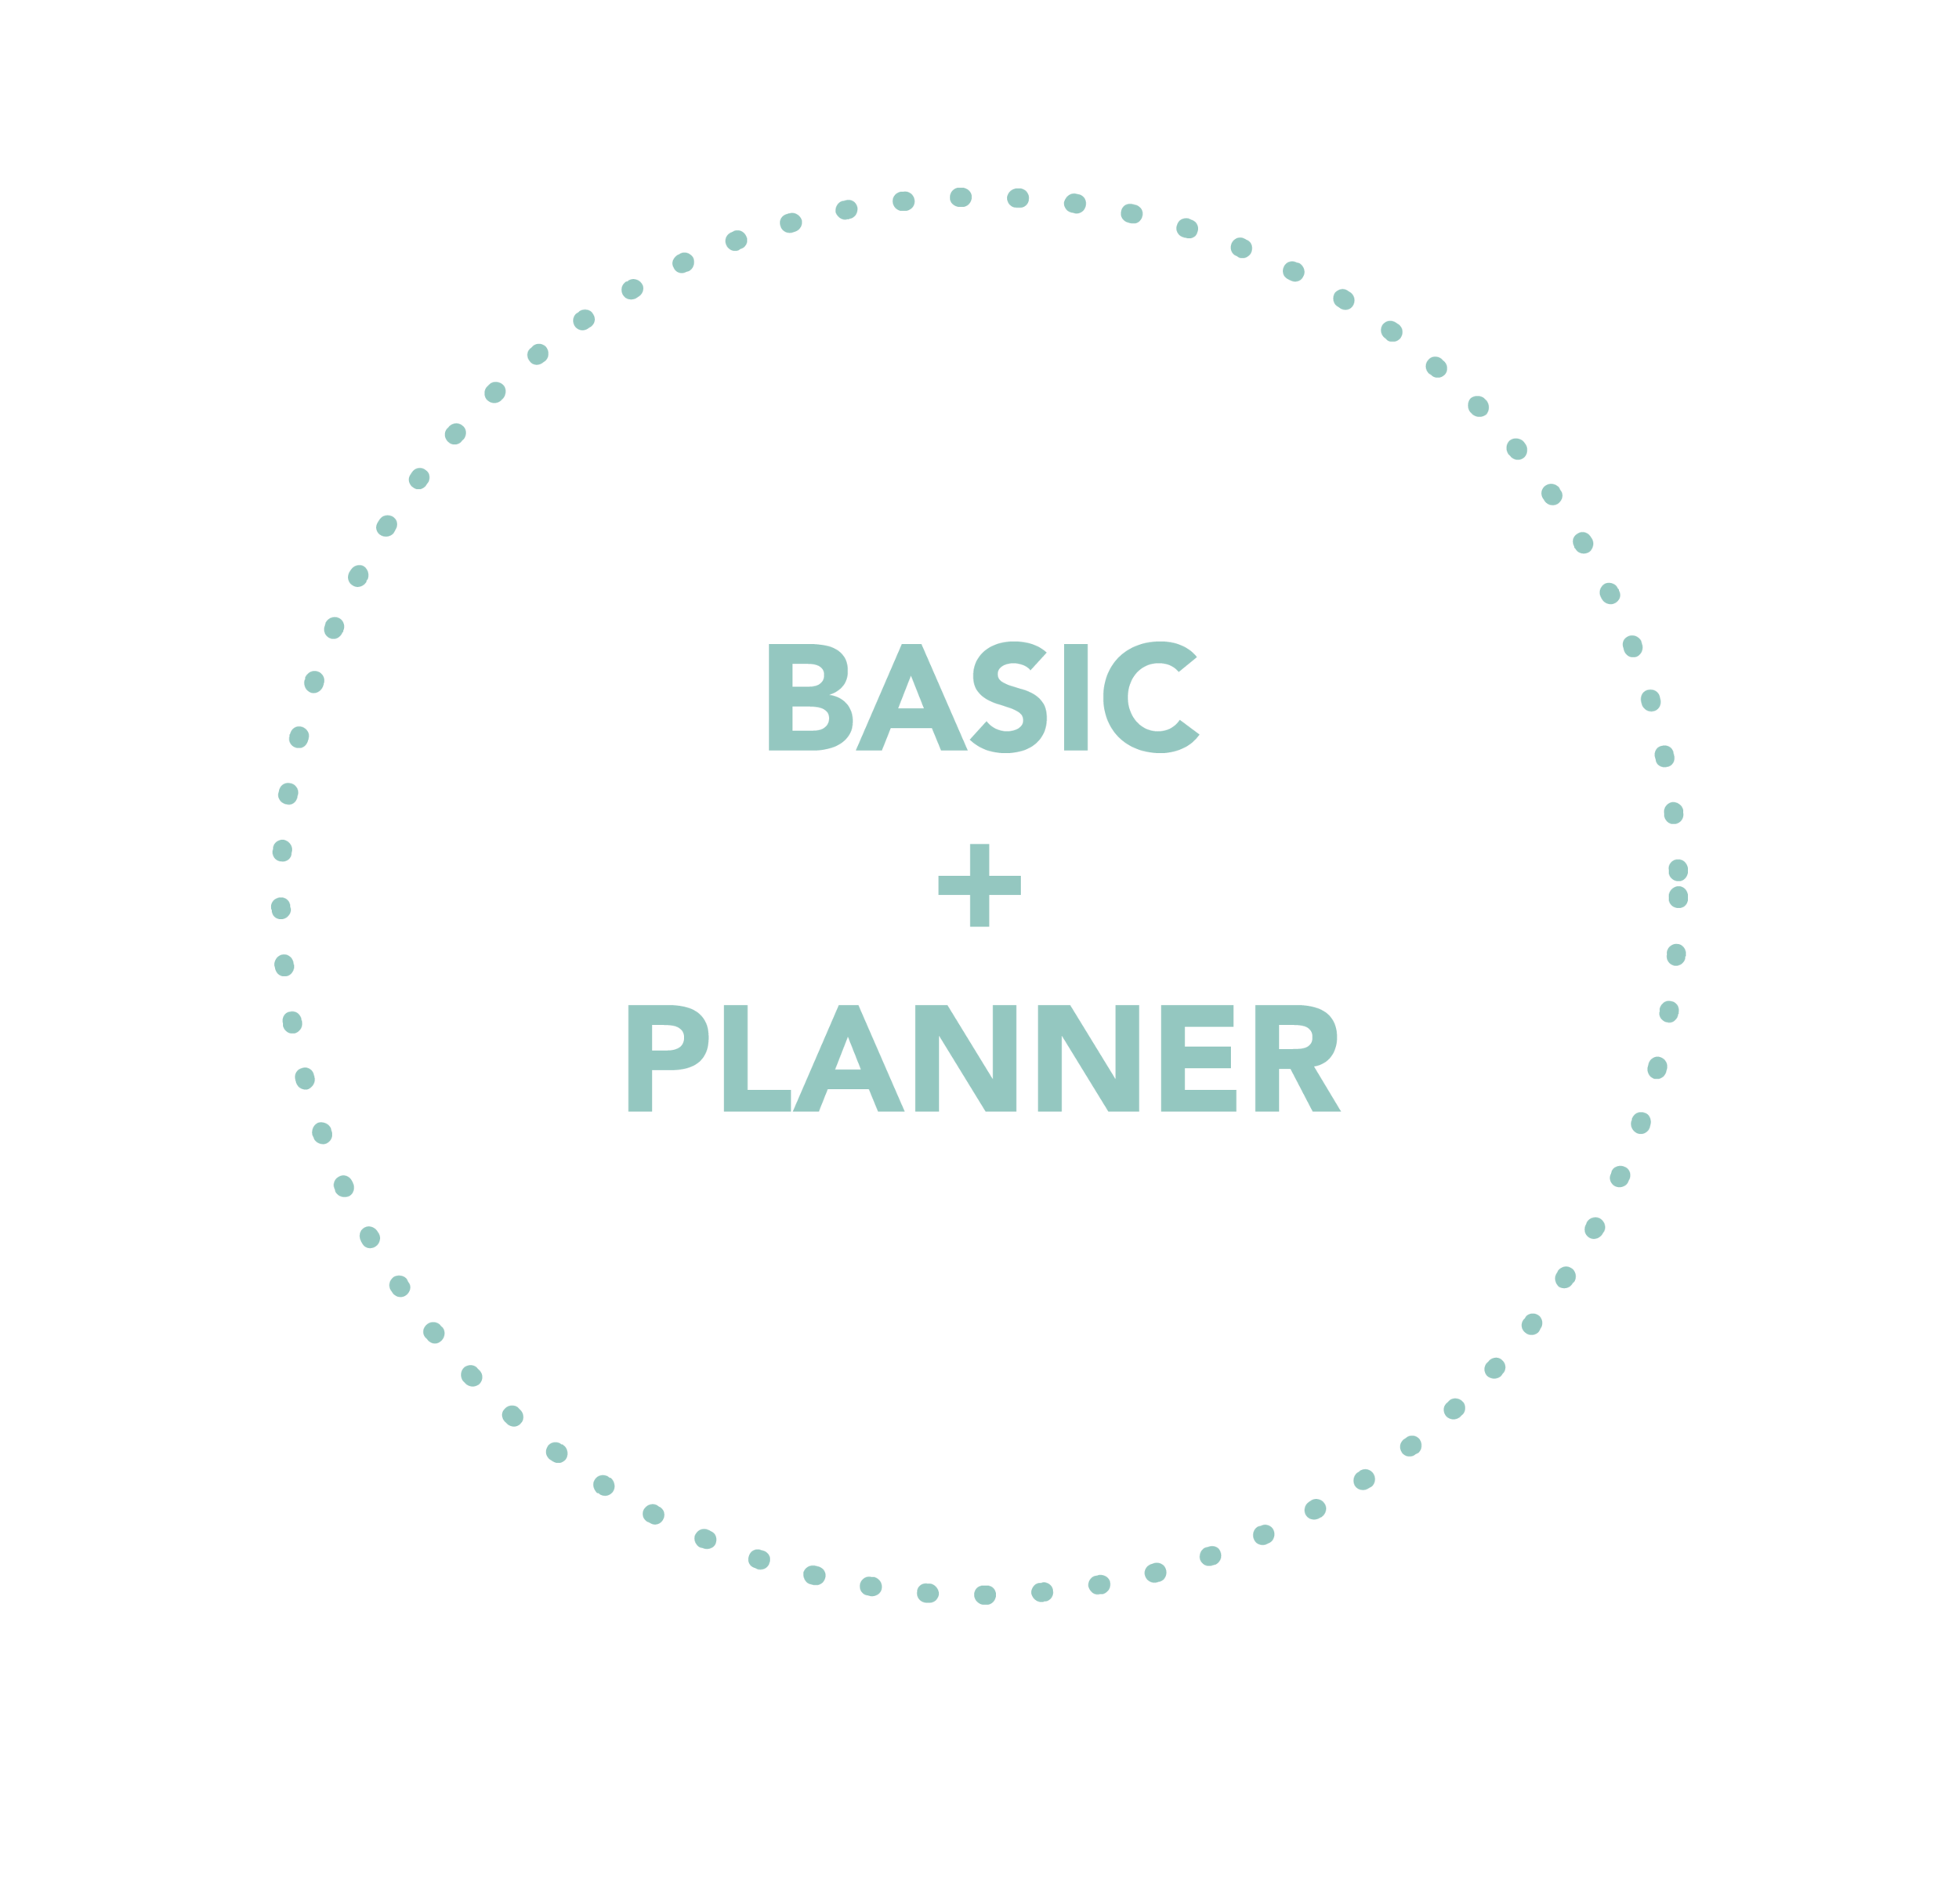 Everything that the Basic Package offers plus our in-house planning through White Magnolia OR Mingle Events, for the 60 day Planner Package.